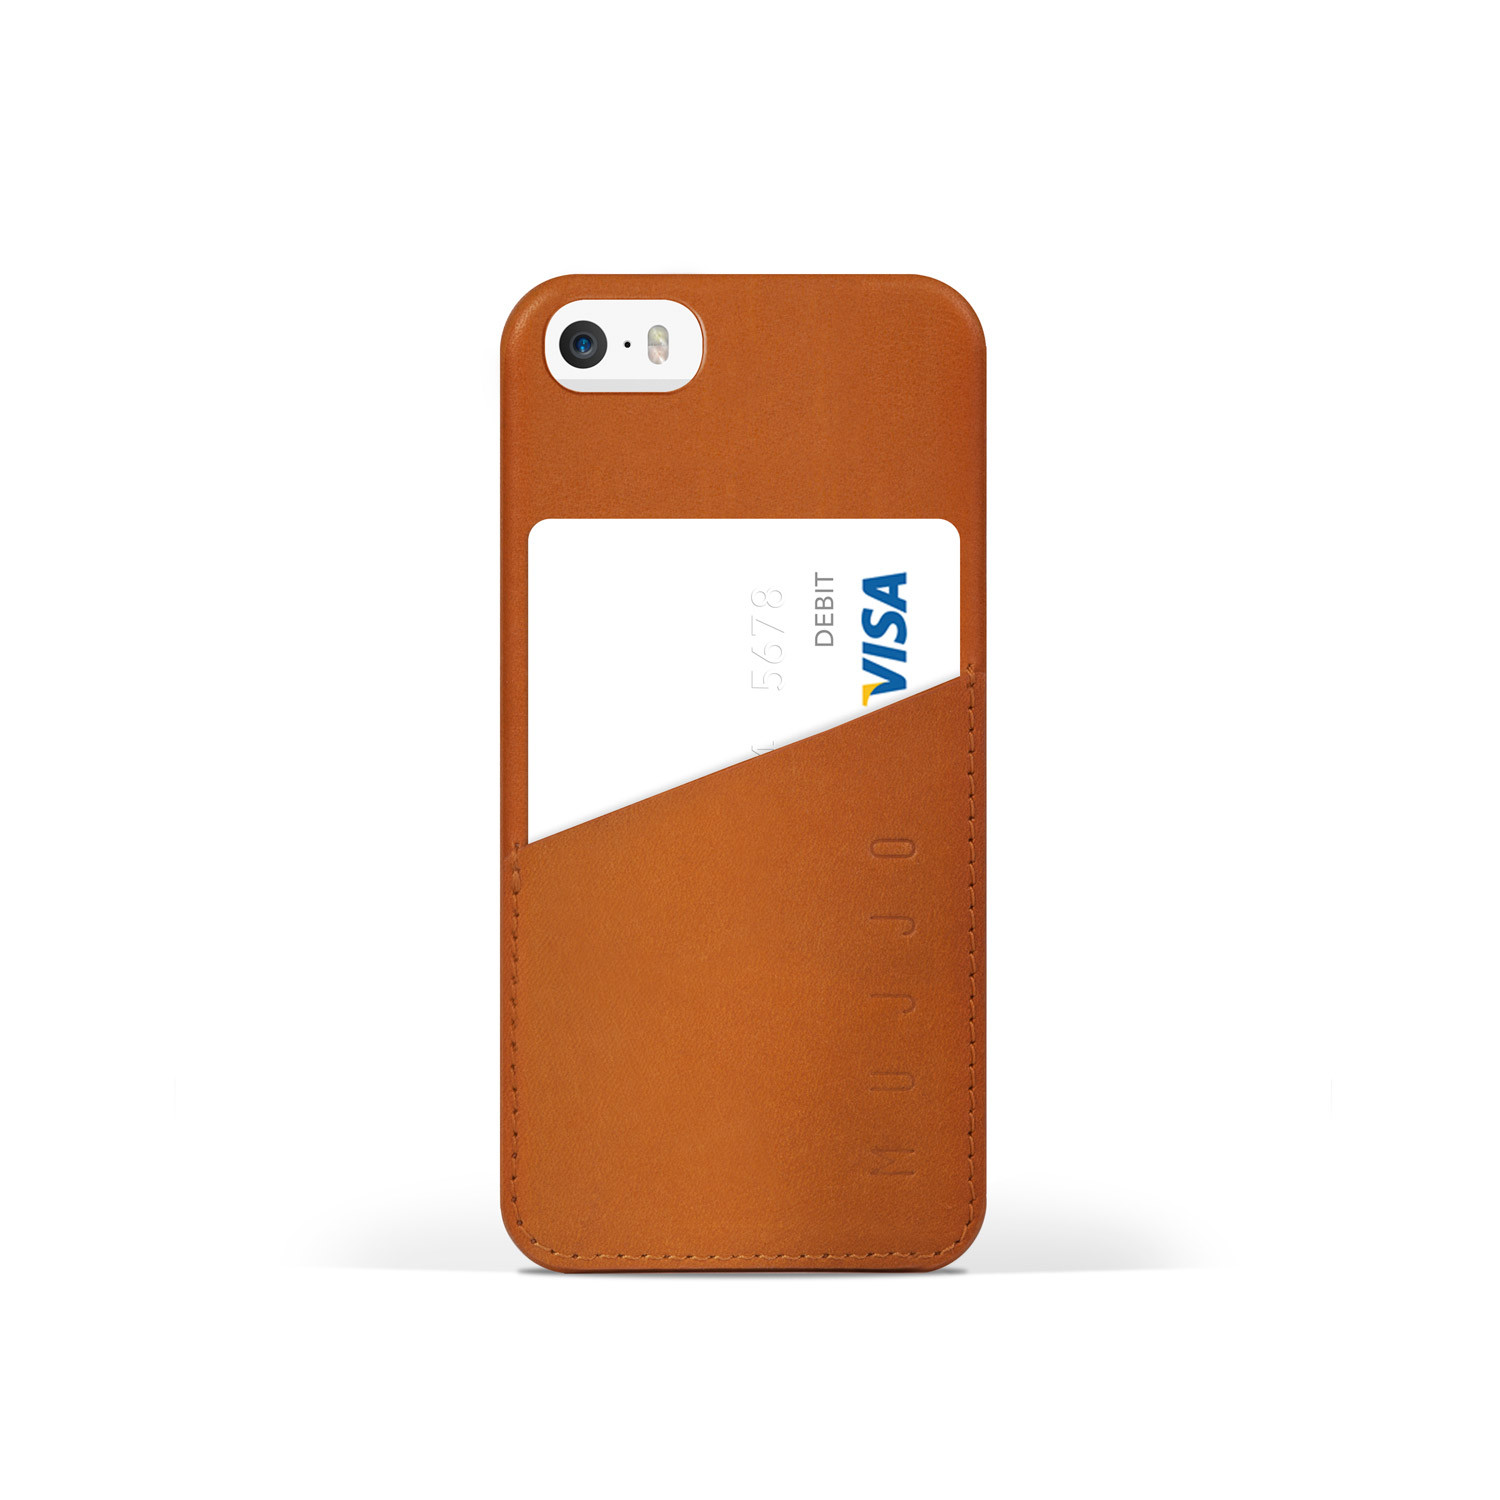 buy online fb8db 614d9 Leather iPhone 5/5S Wallet Case (Tan) - Mujjo - Touch of Modern